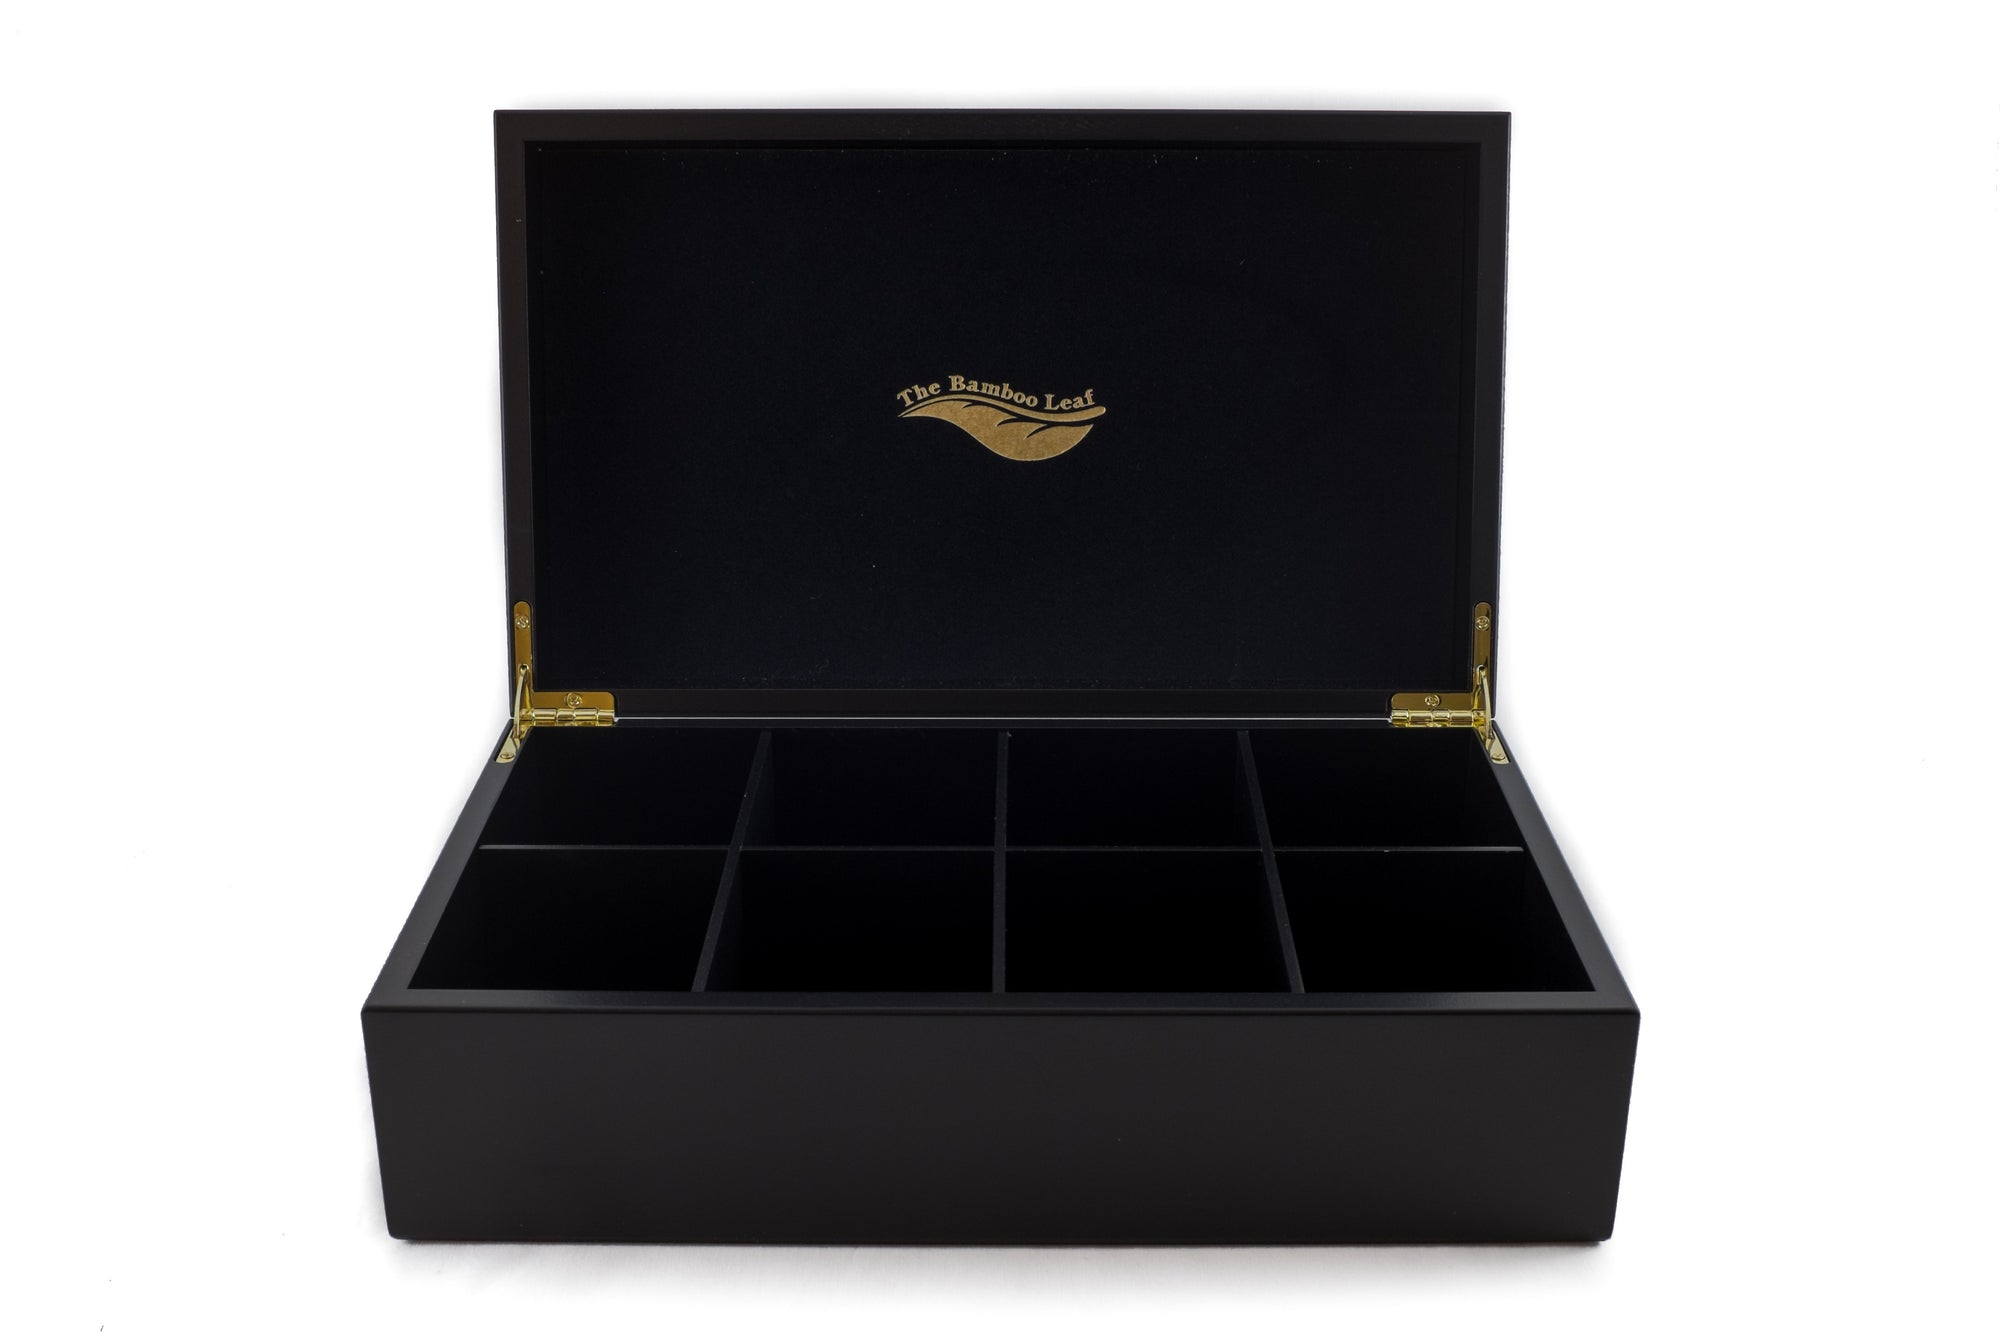 8 Compartment Wooden Tea Box Black The Bamboo Leaf